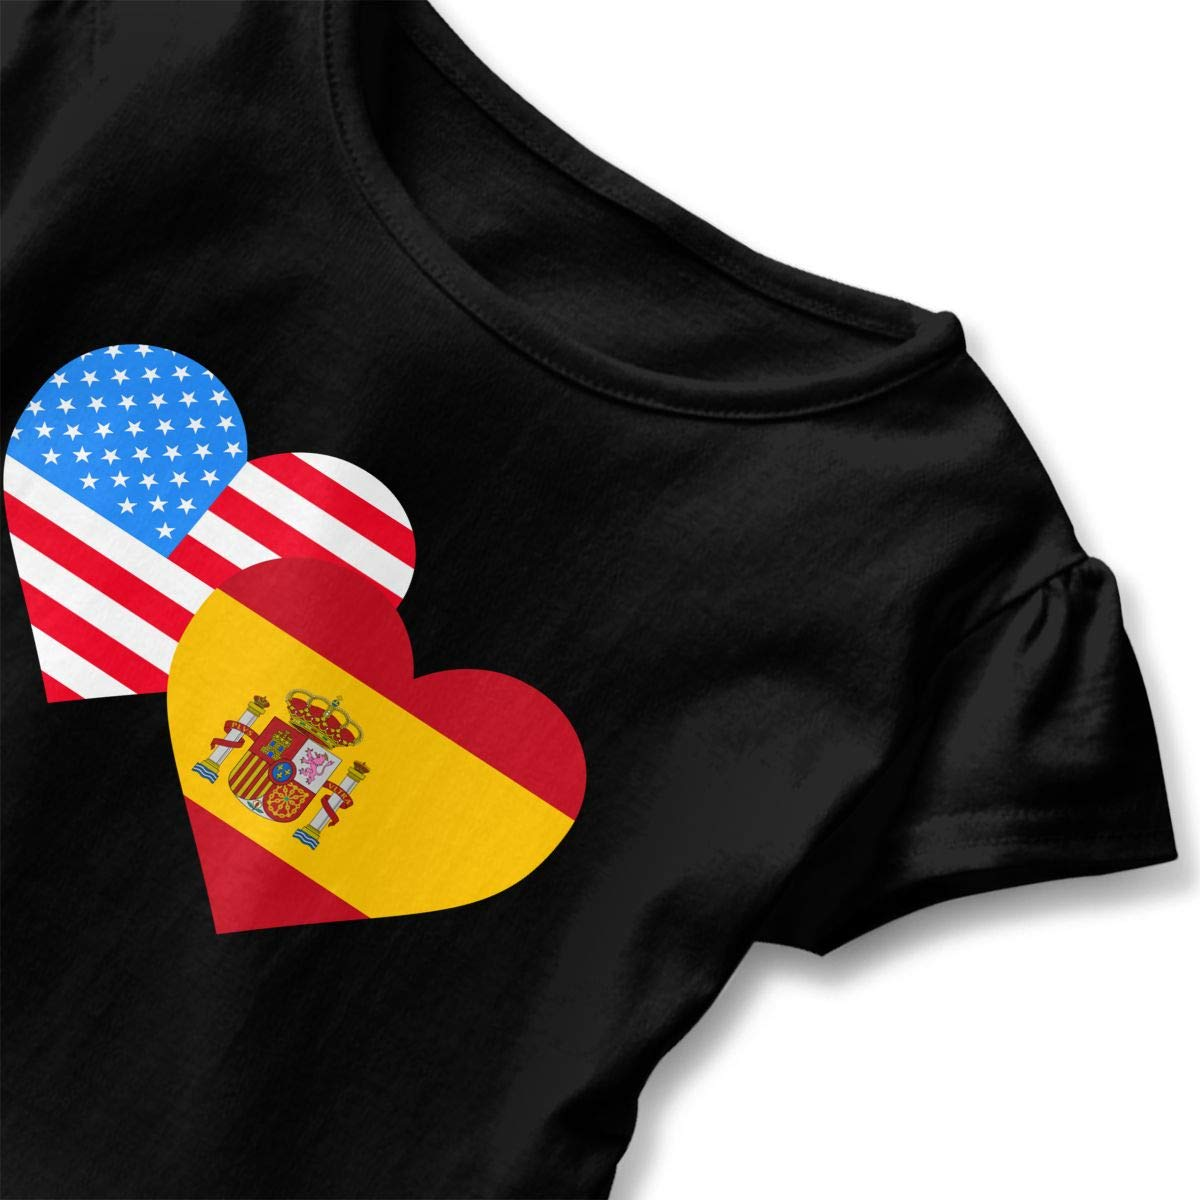 HYBDX9T Little Girls American Spain Heart Flag Funny Short Sleeve Cotton T Shirts Basic Tops Tee Clothes